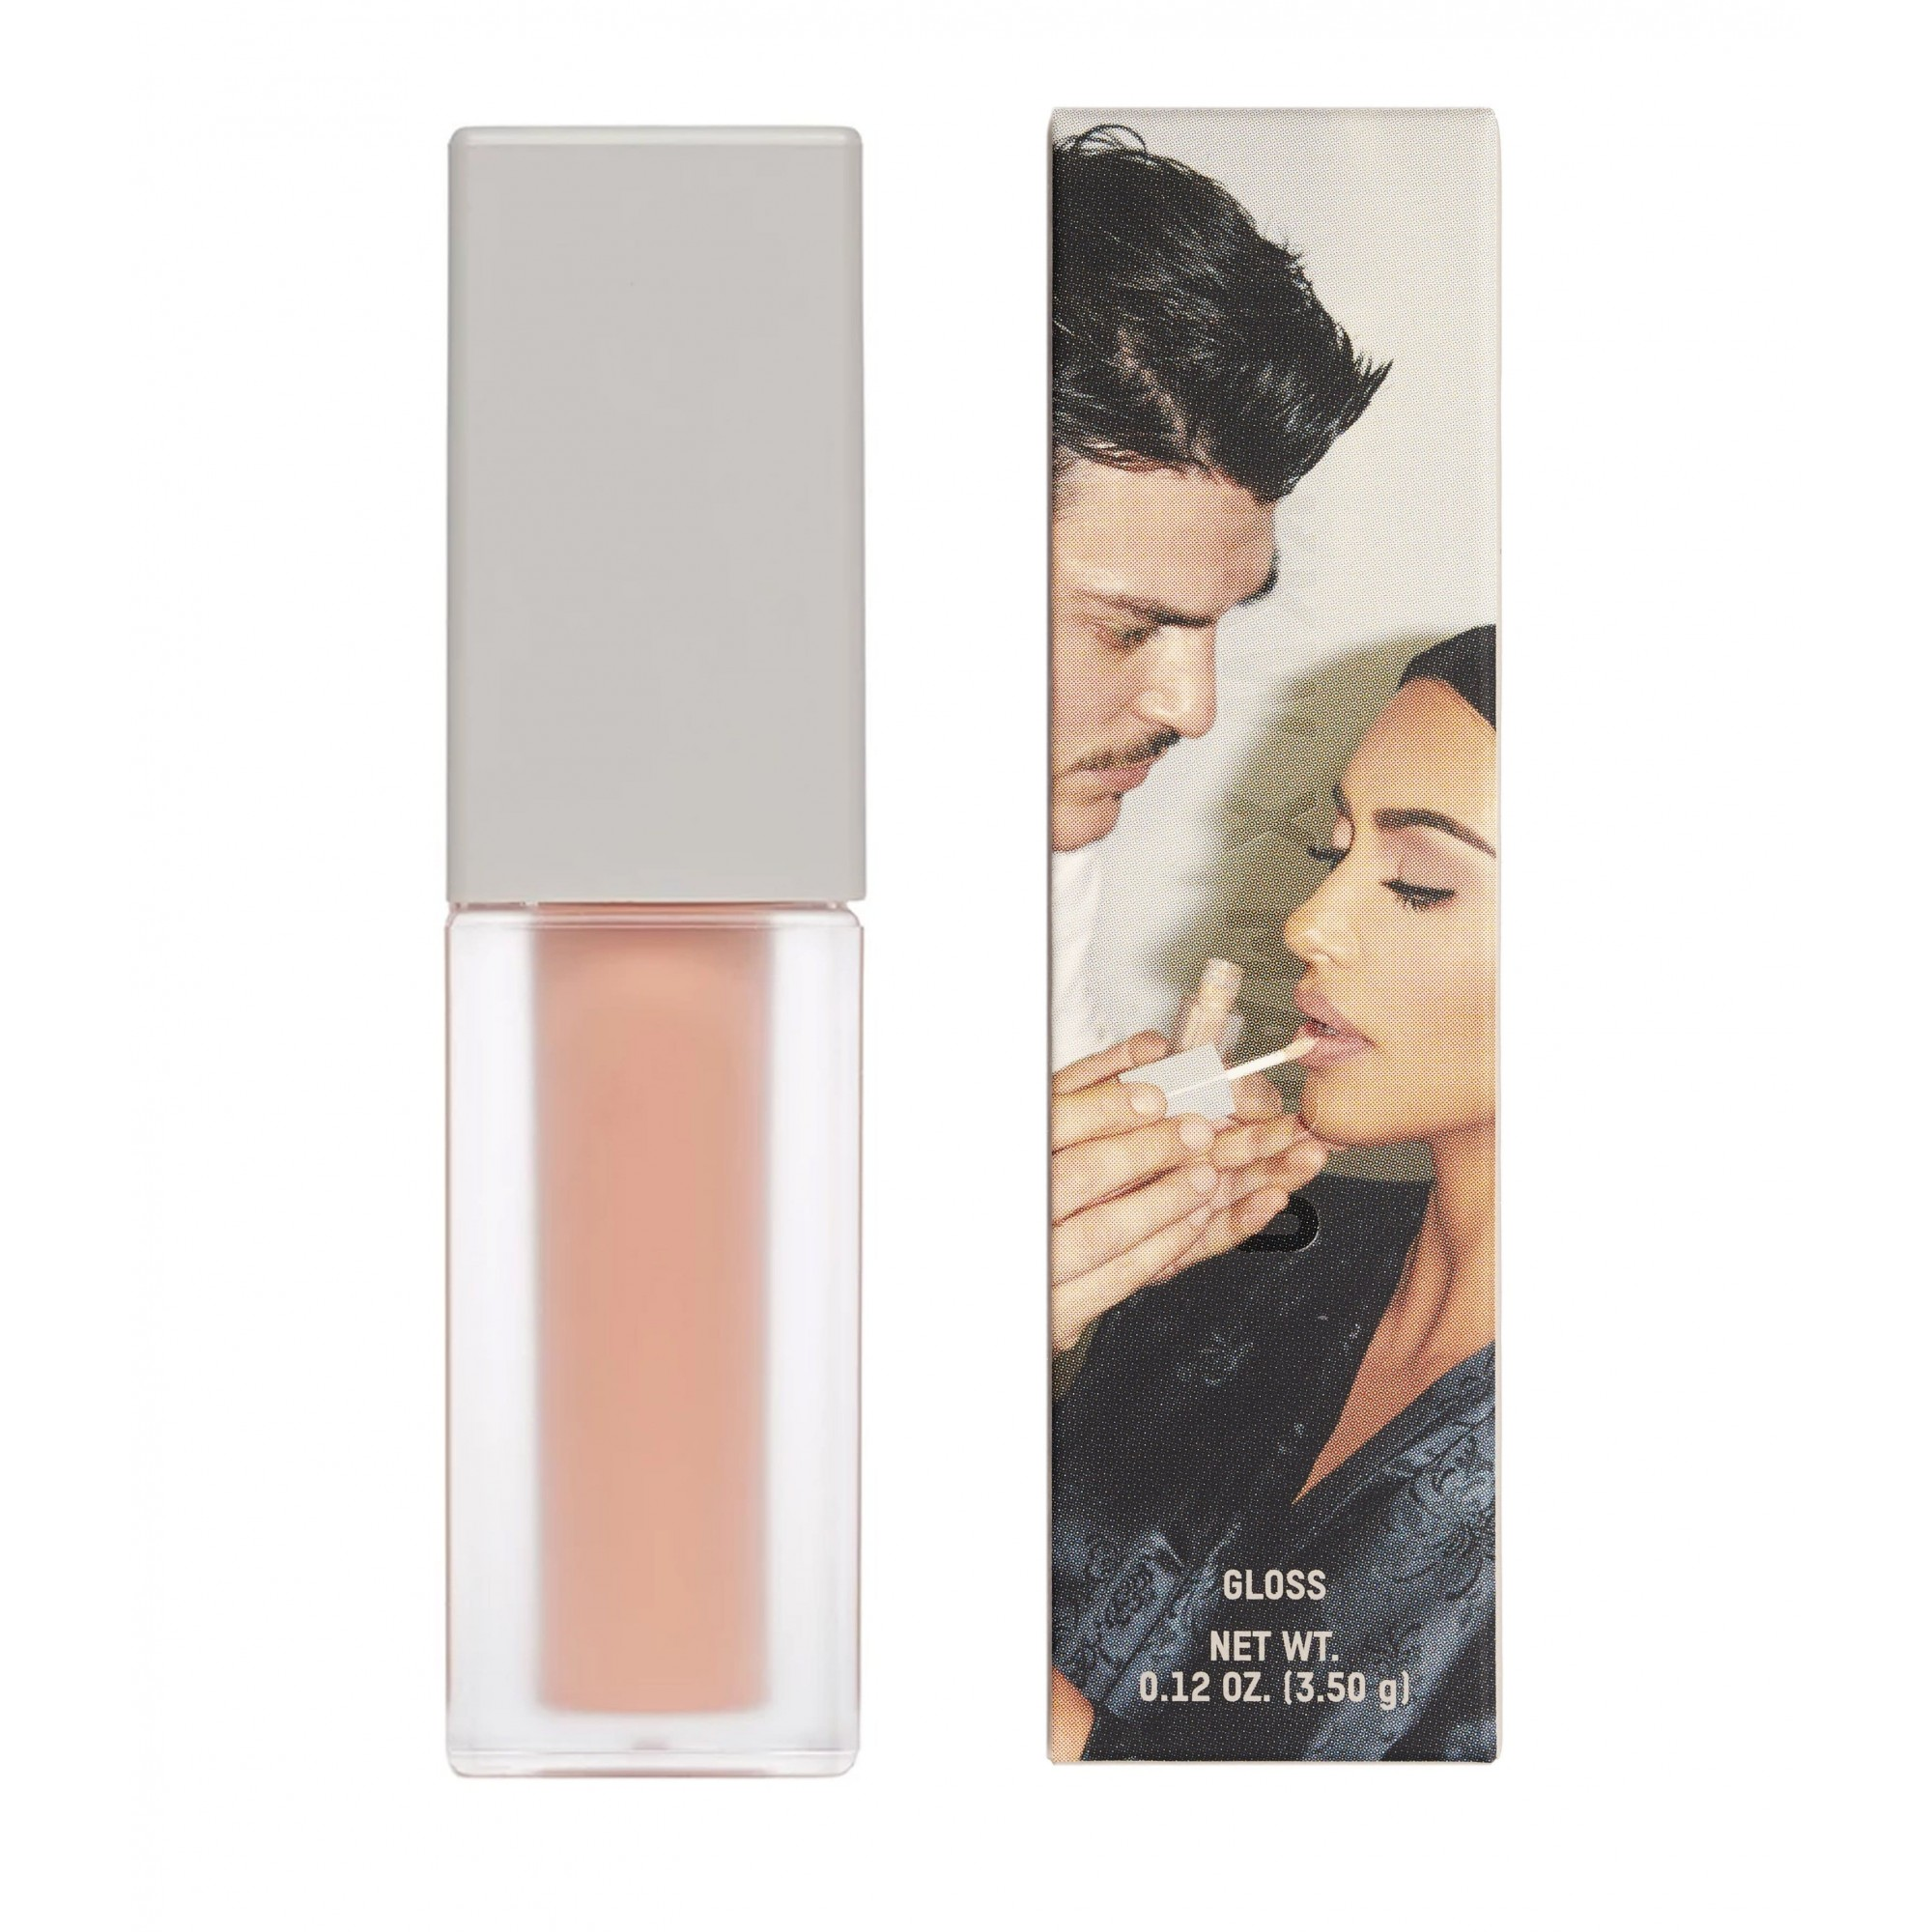 KKW Beauty x Mario Proud Of You Gloss - The Artist & Muse Collection